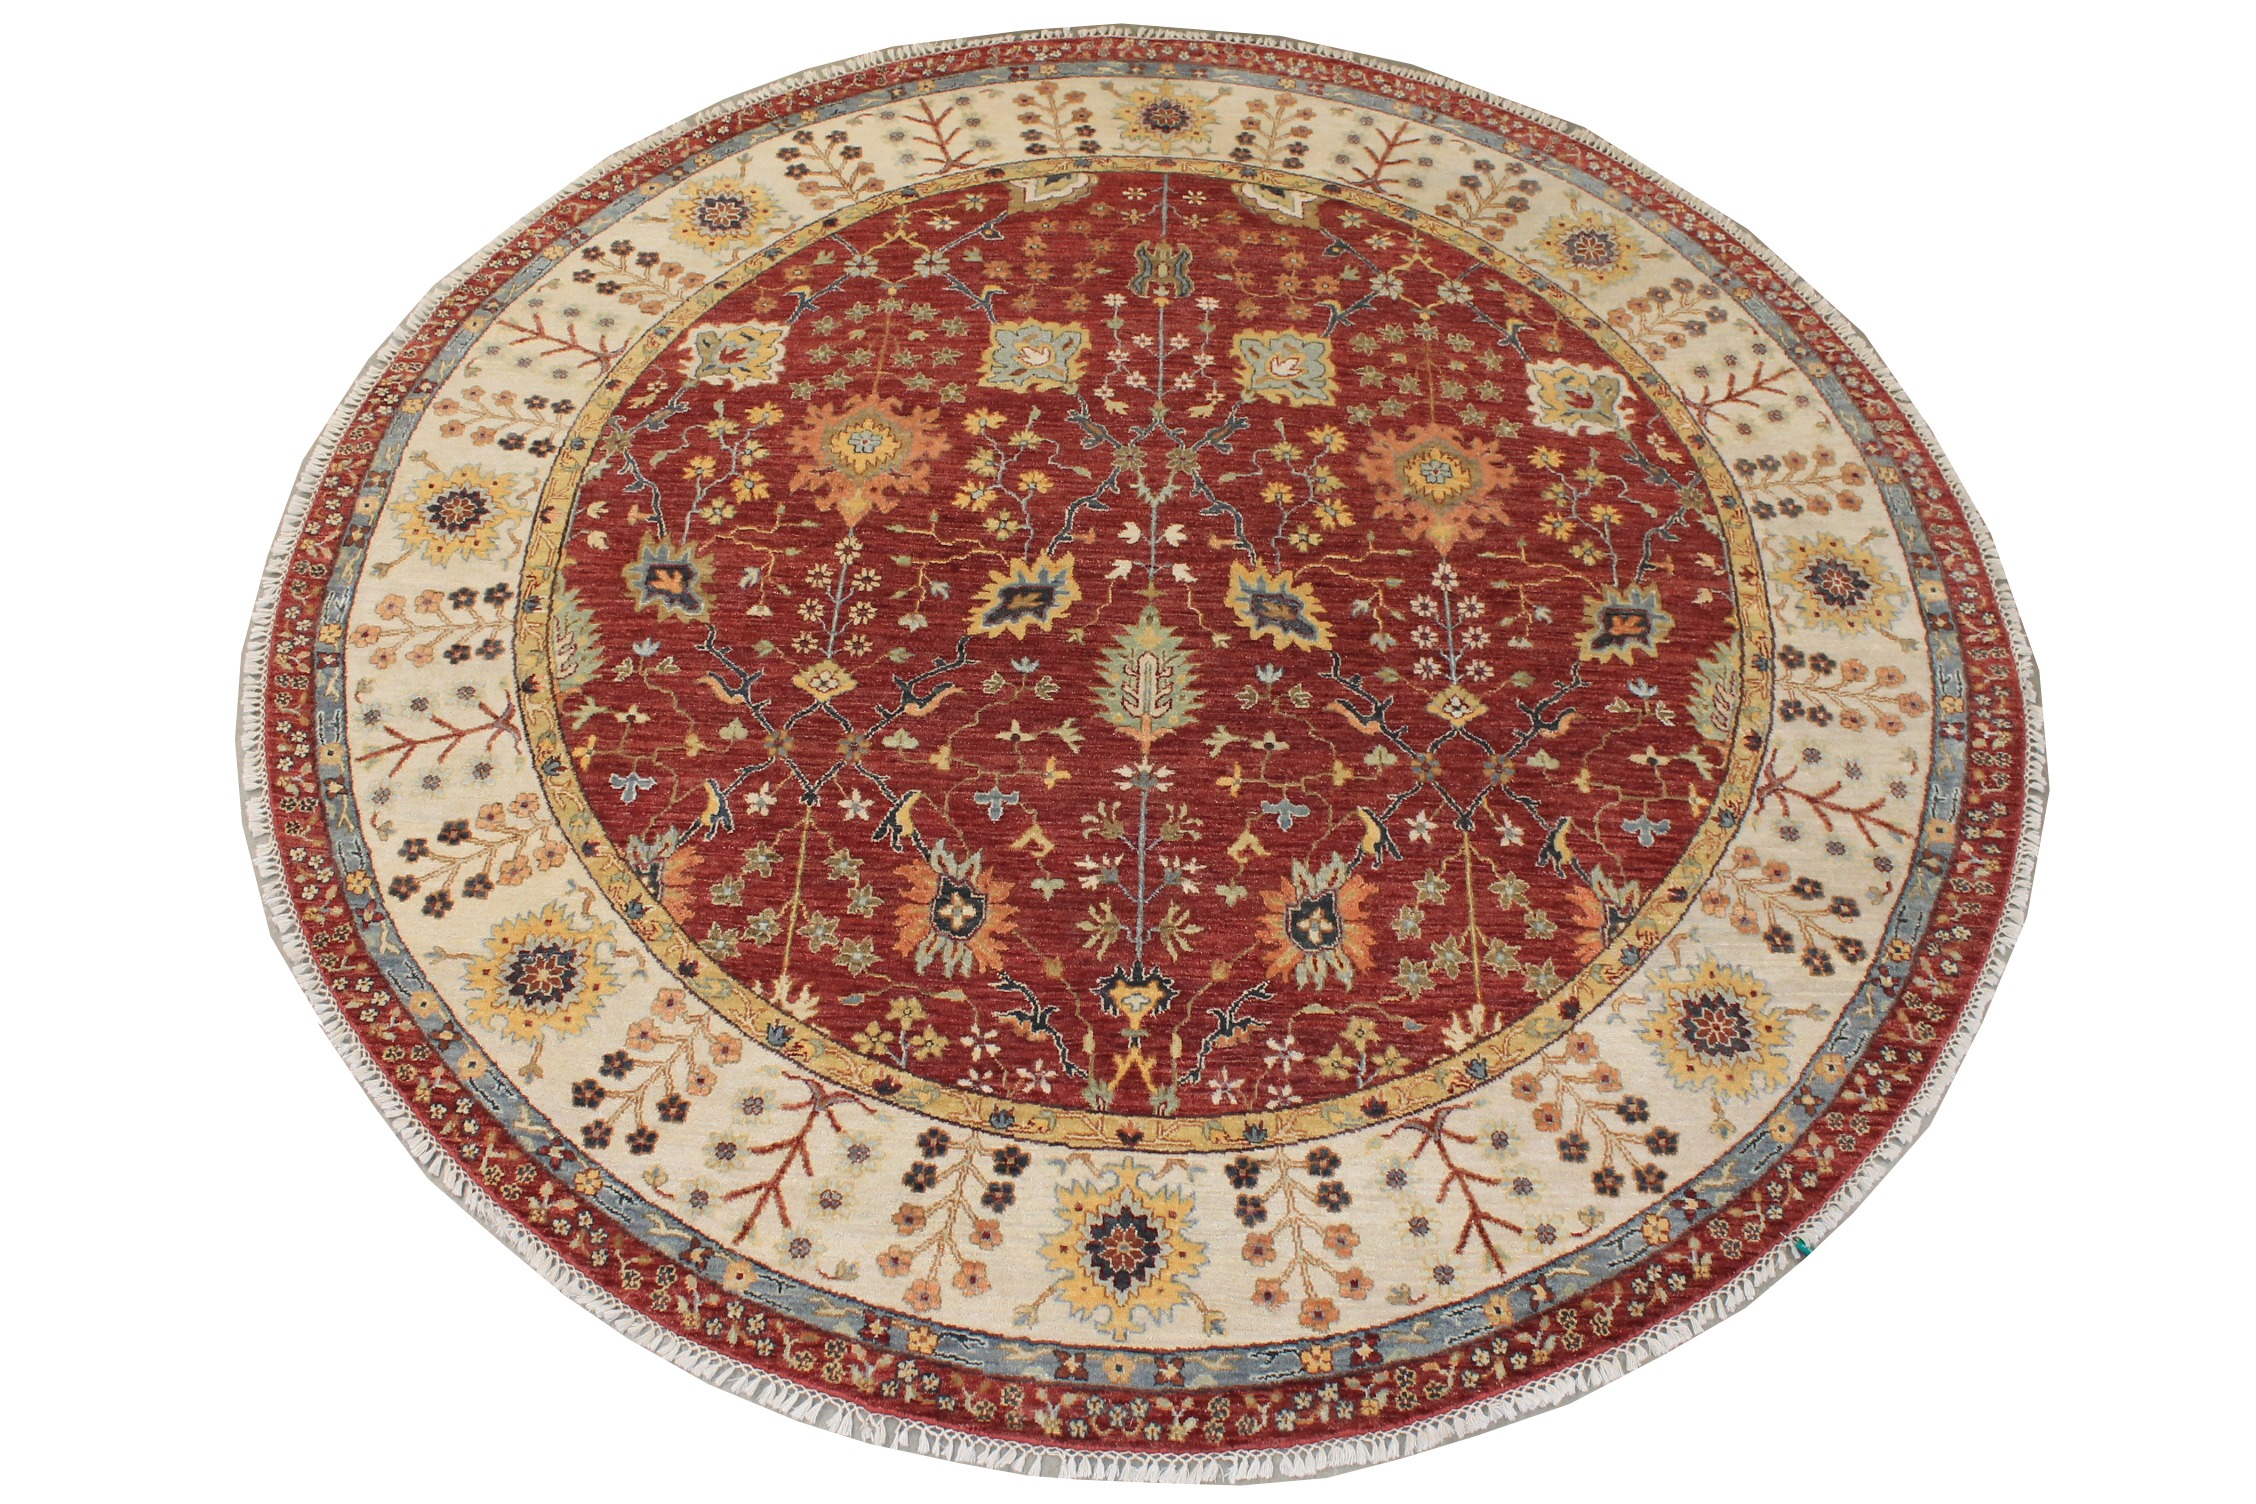 8 ft. Round & Square Traditional Hand Knotted Wool Area Rug - MR19385